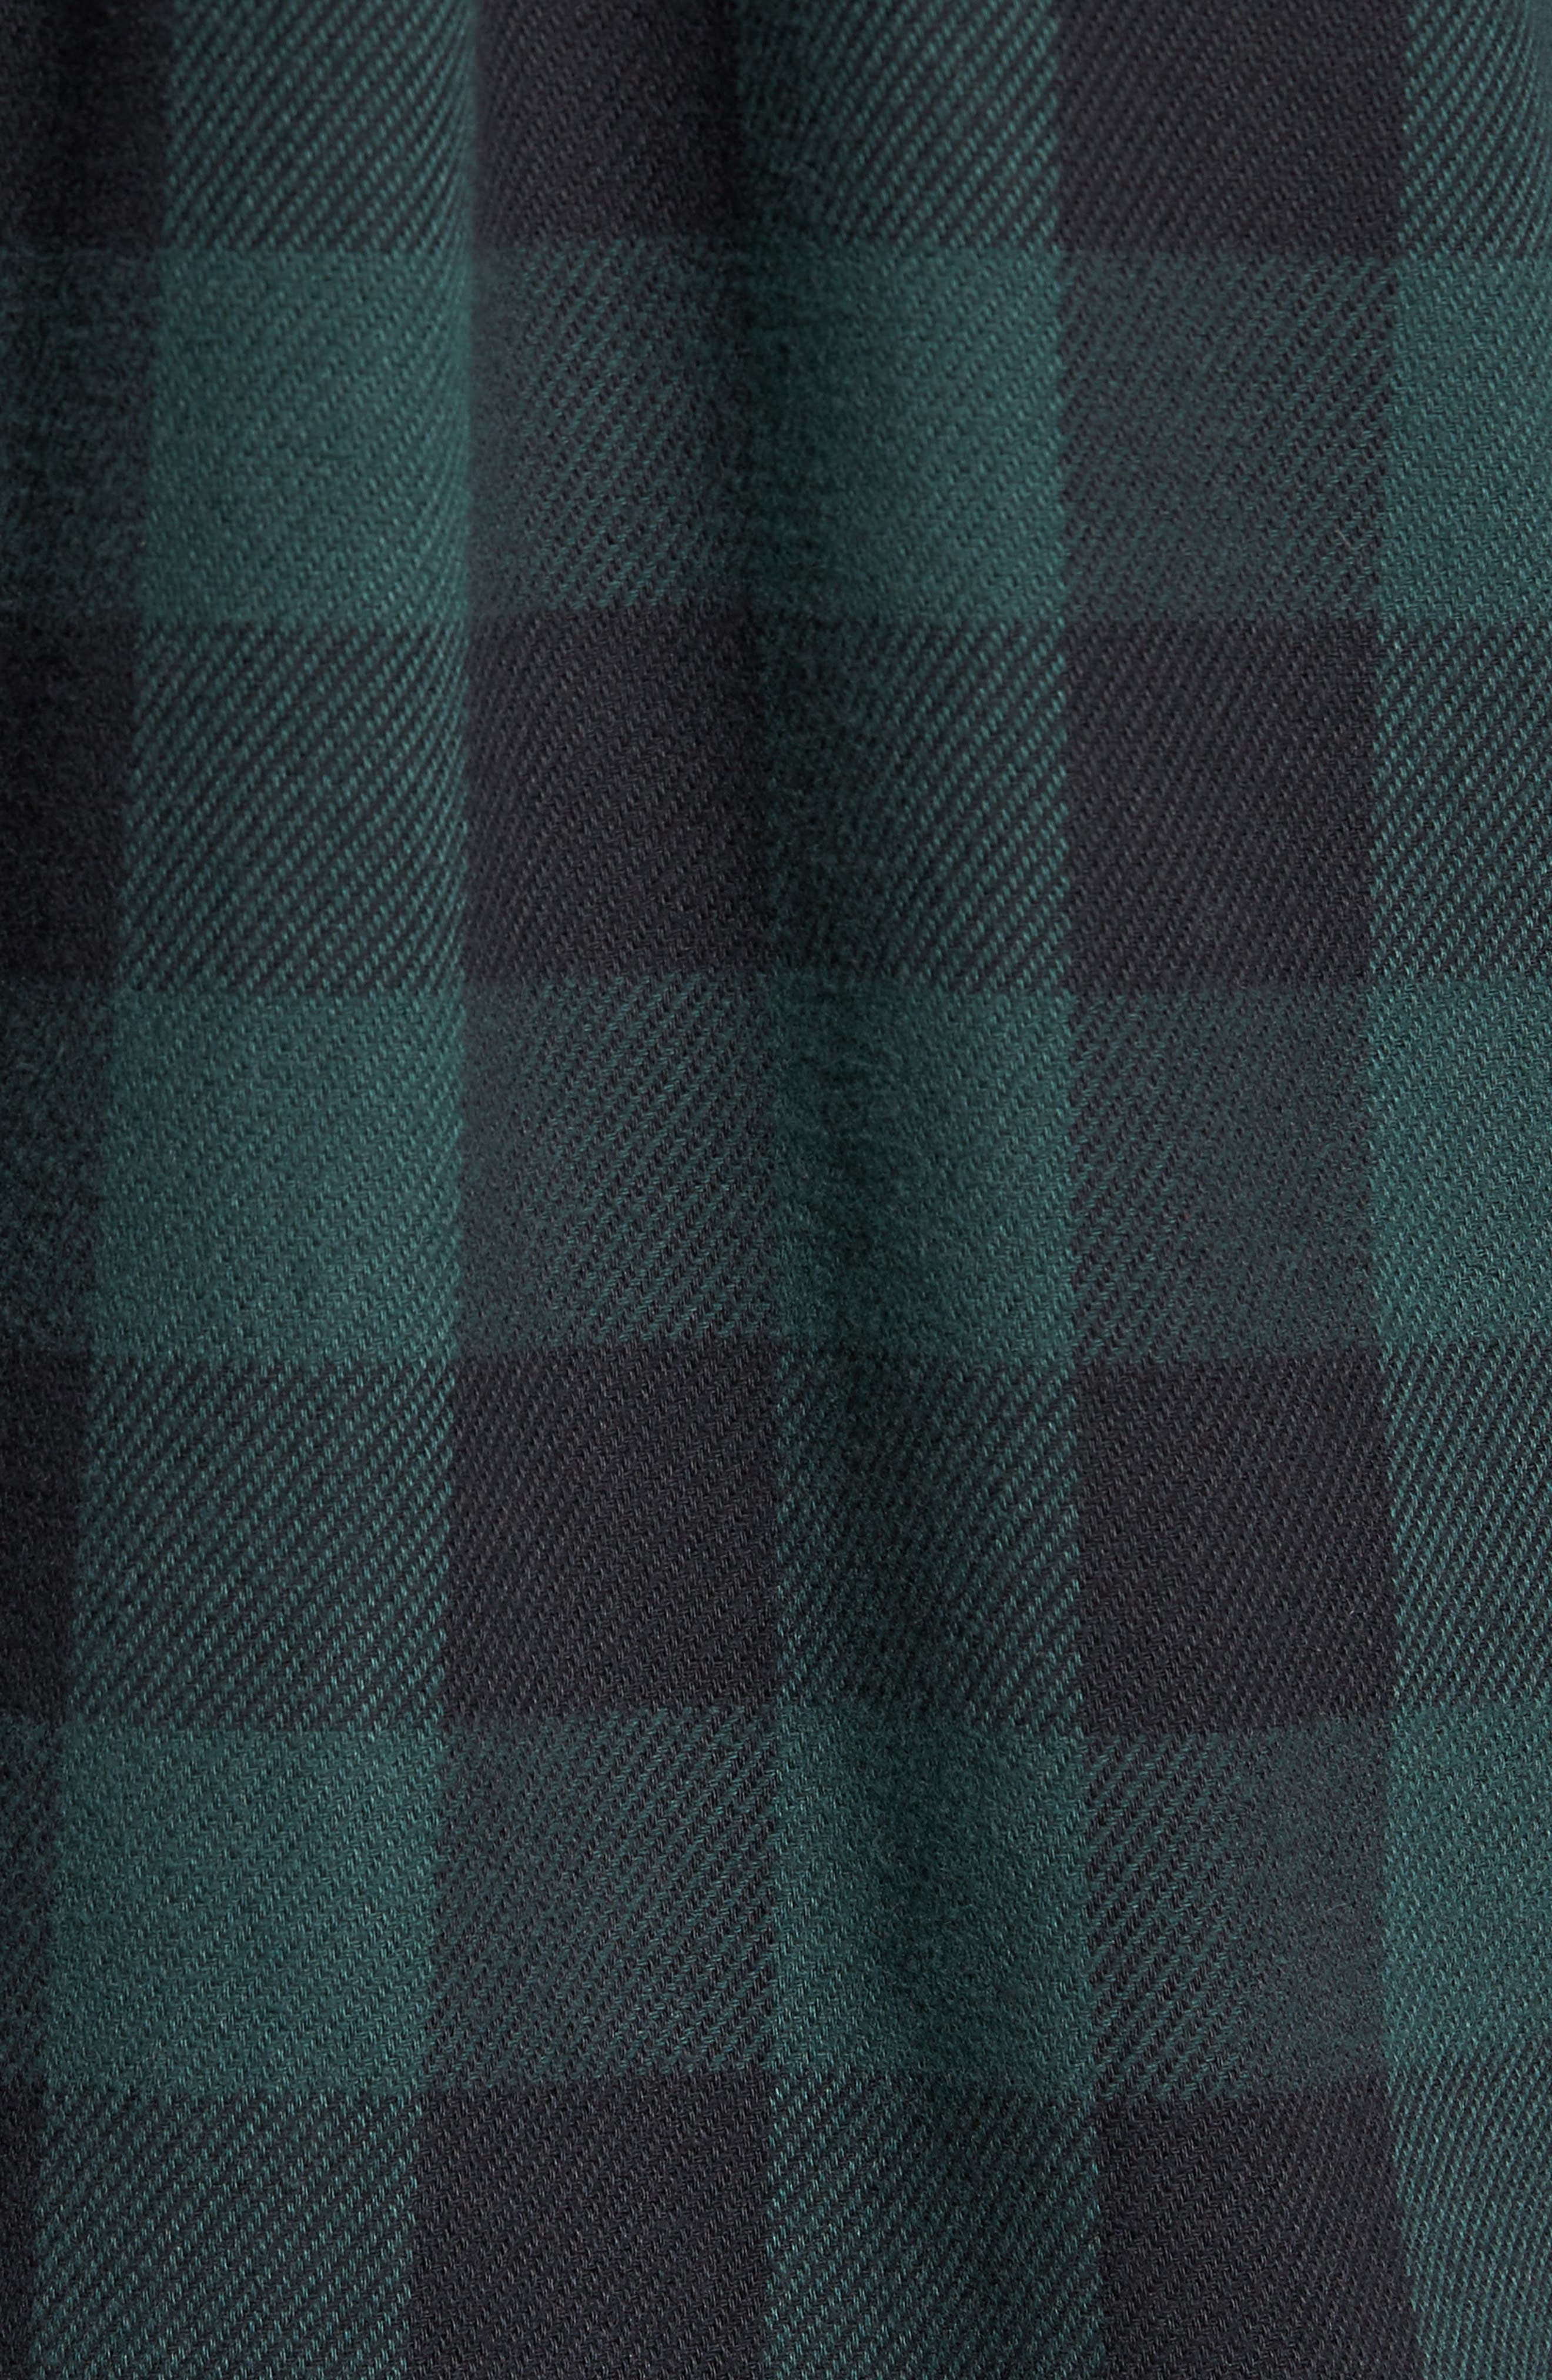 Wisner Plaid Shirt,                             Alternate thumbnail 5, color,                             001